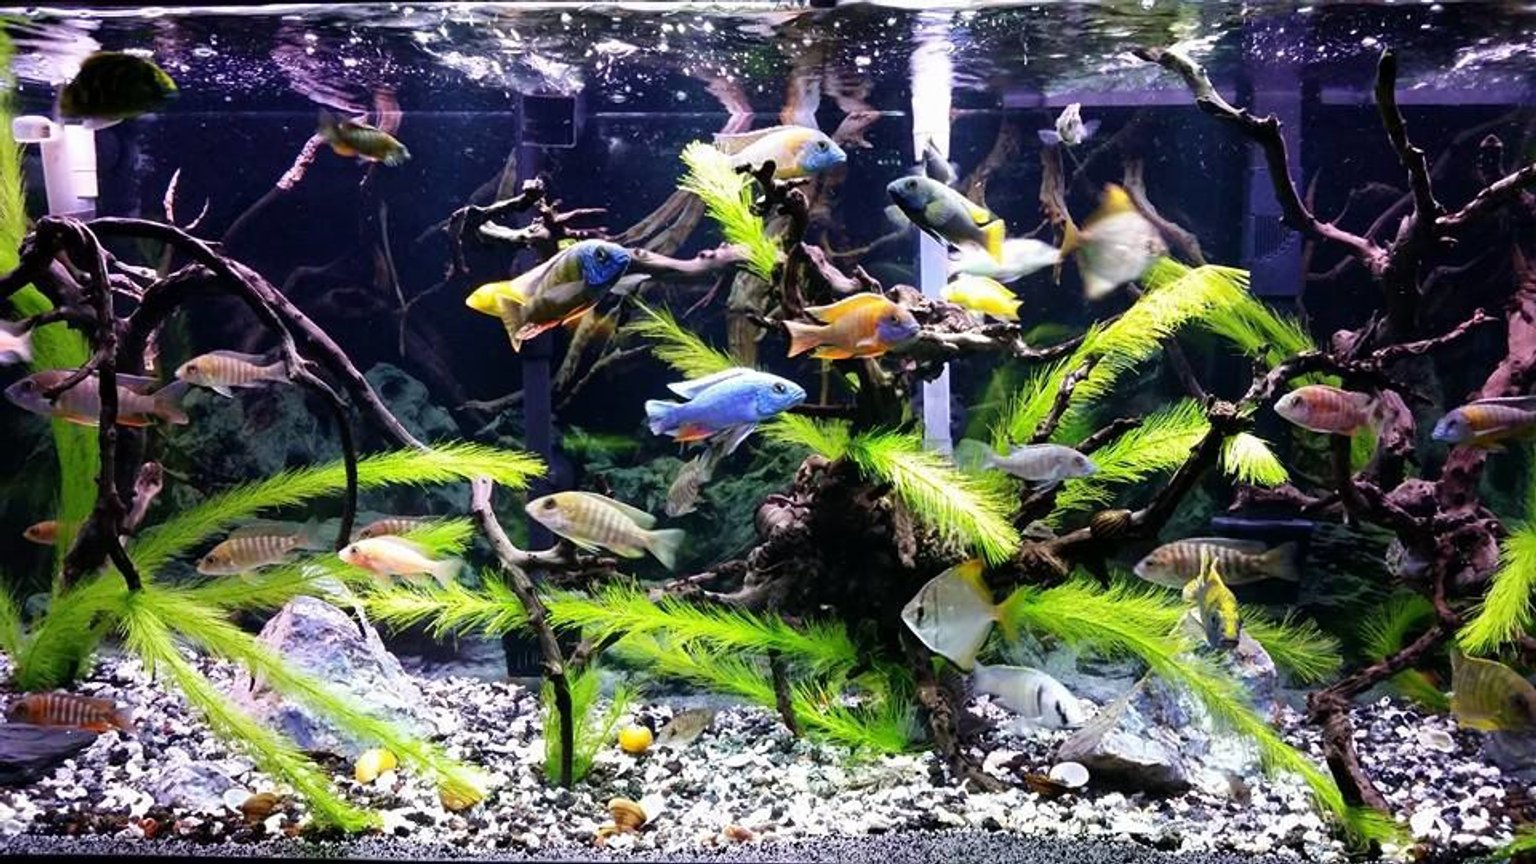 90 gallons freshwater fish tank (mostly fish and non-living decorations) - My 90g Peacock / Hap tank